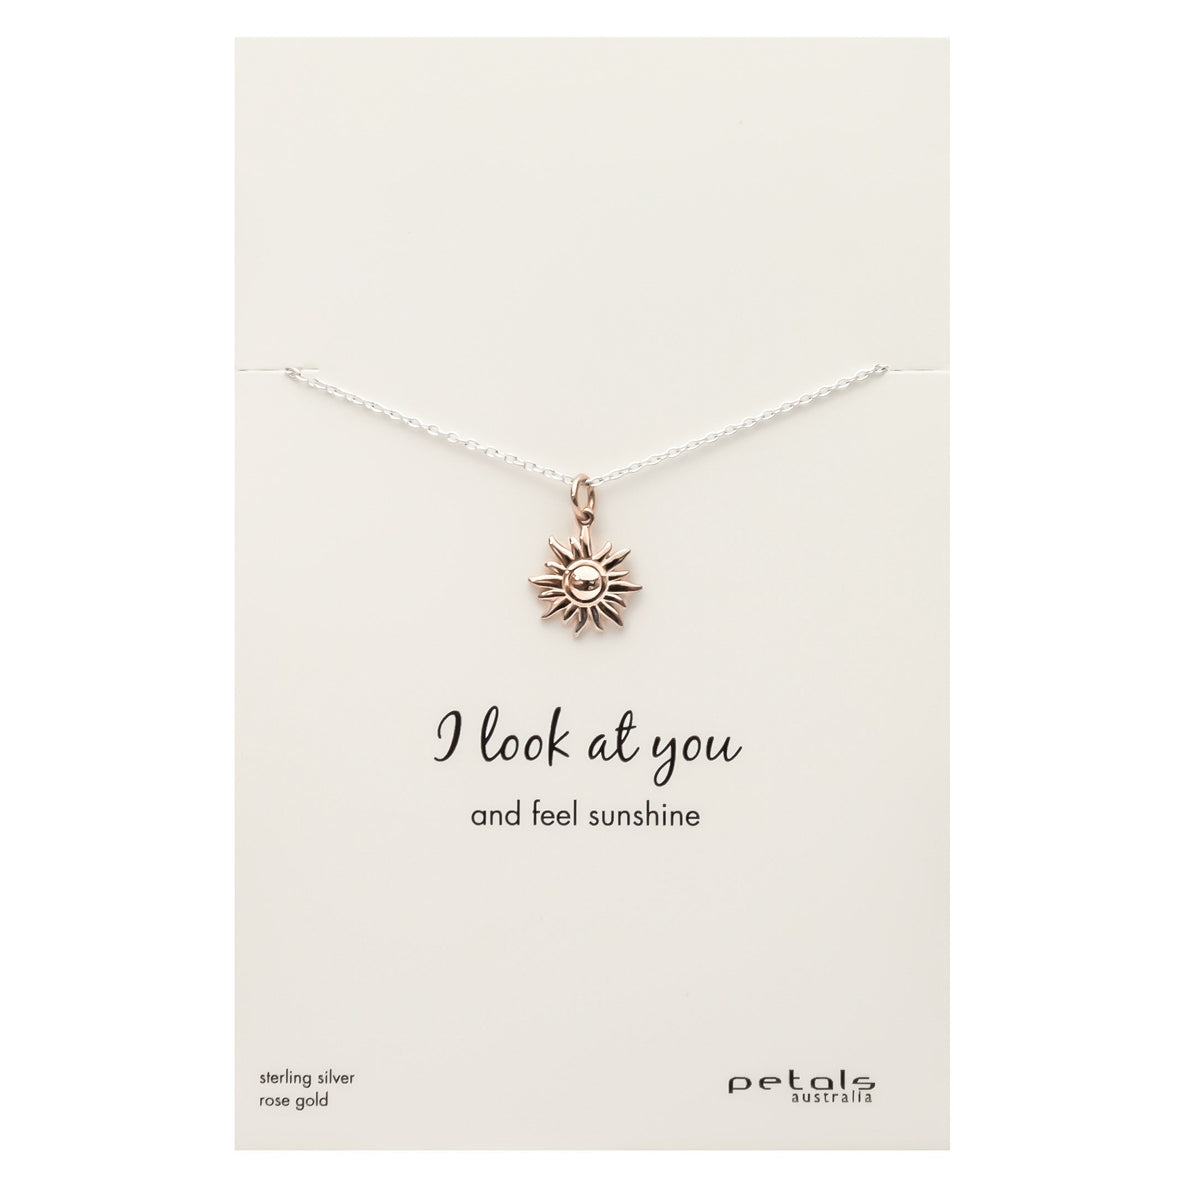 Sun - I look at You  Necklace - Silver & Rose Gold